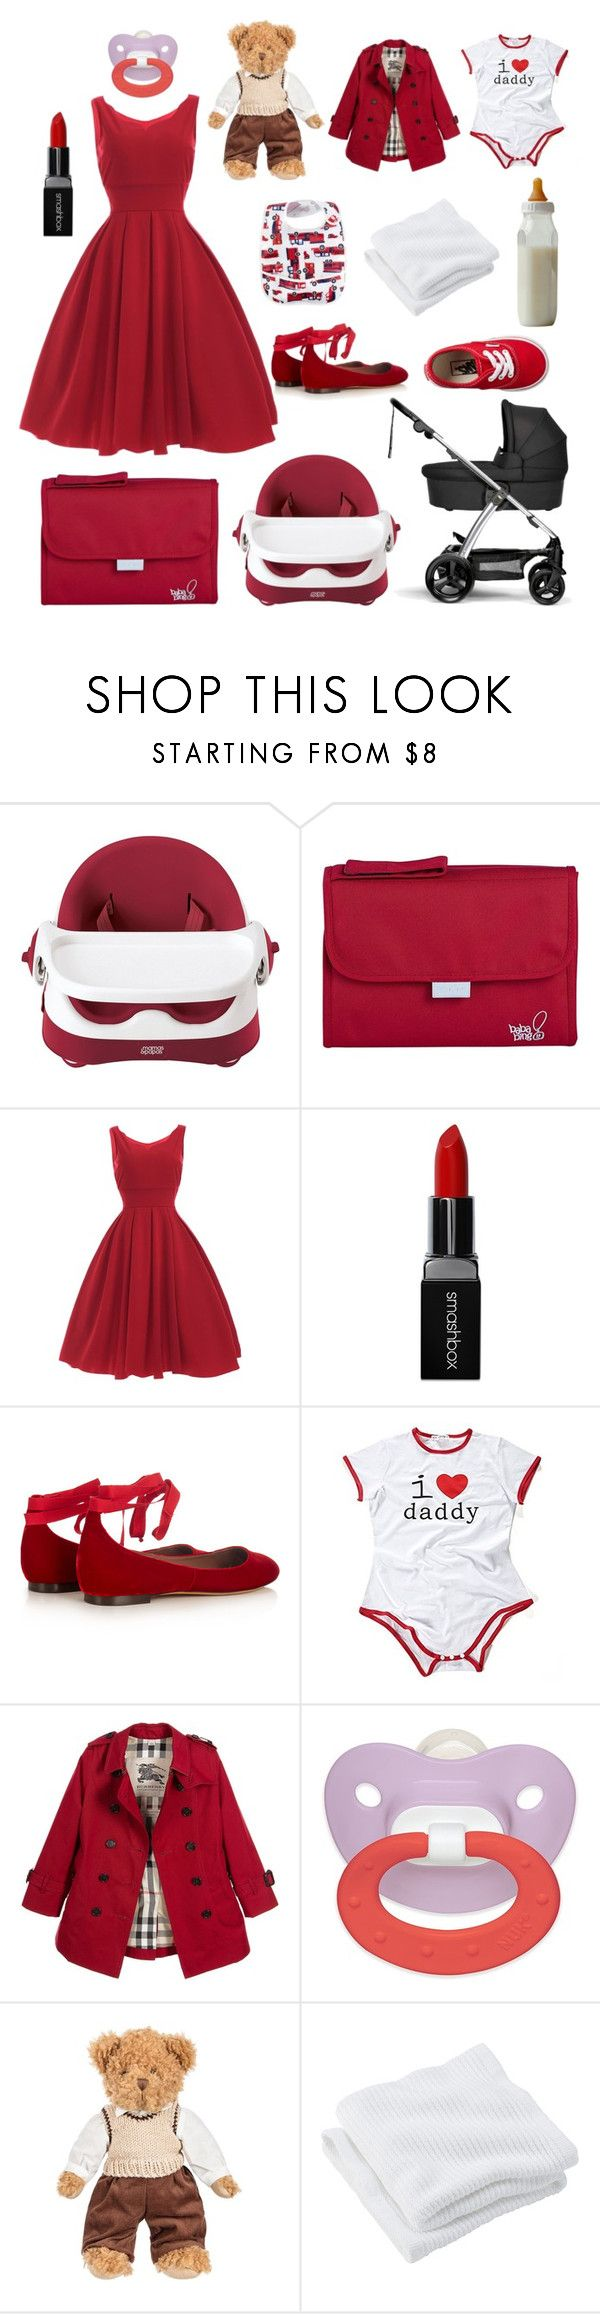 """baby"" by theresiastylesdelevingne ❤ liked on Polyvore featuring Mamas & Papas, Sola2, Smashbox, Tabitha Simmons, Burberry, Vans and Brahms Mount"